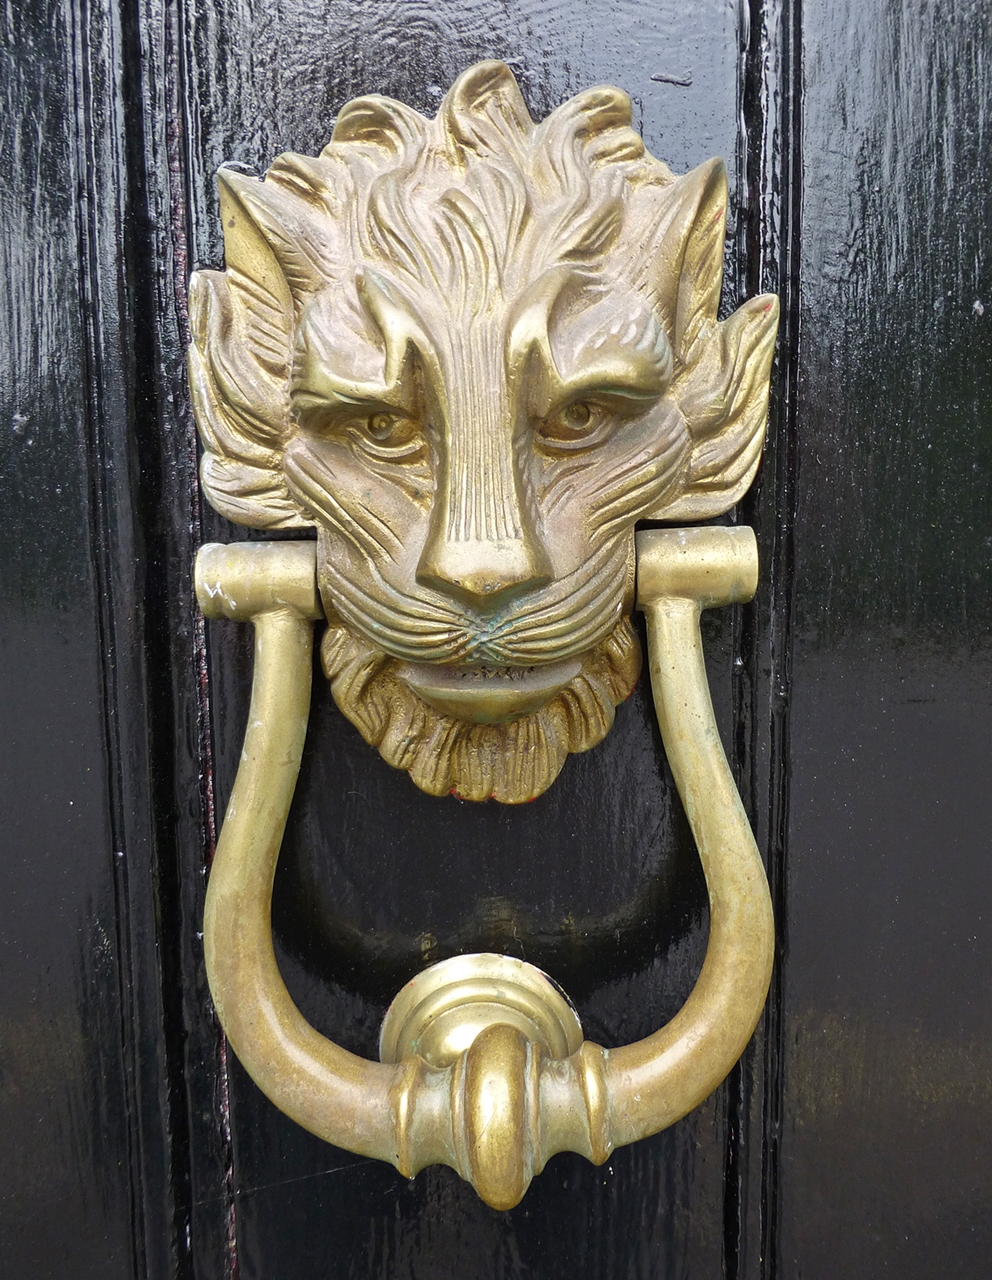 Flora cantiaci knockers and knobs for 10 downing street lion authentic foundry door knocker